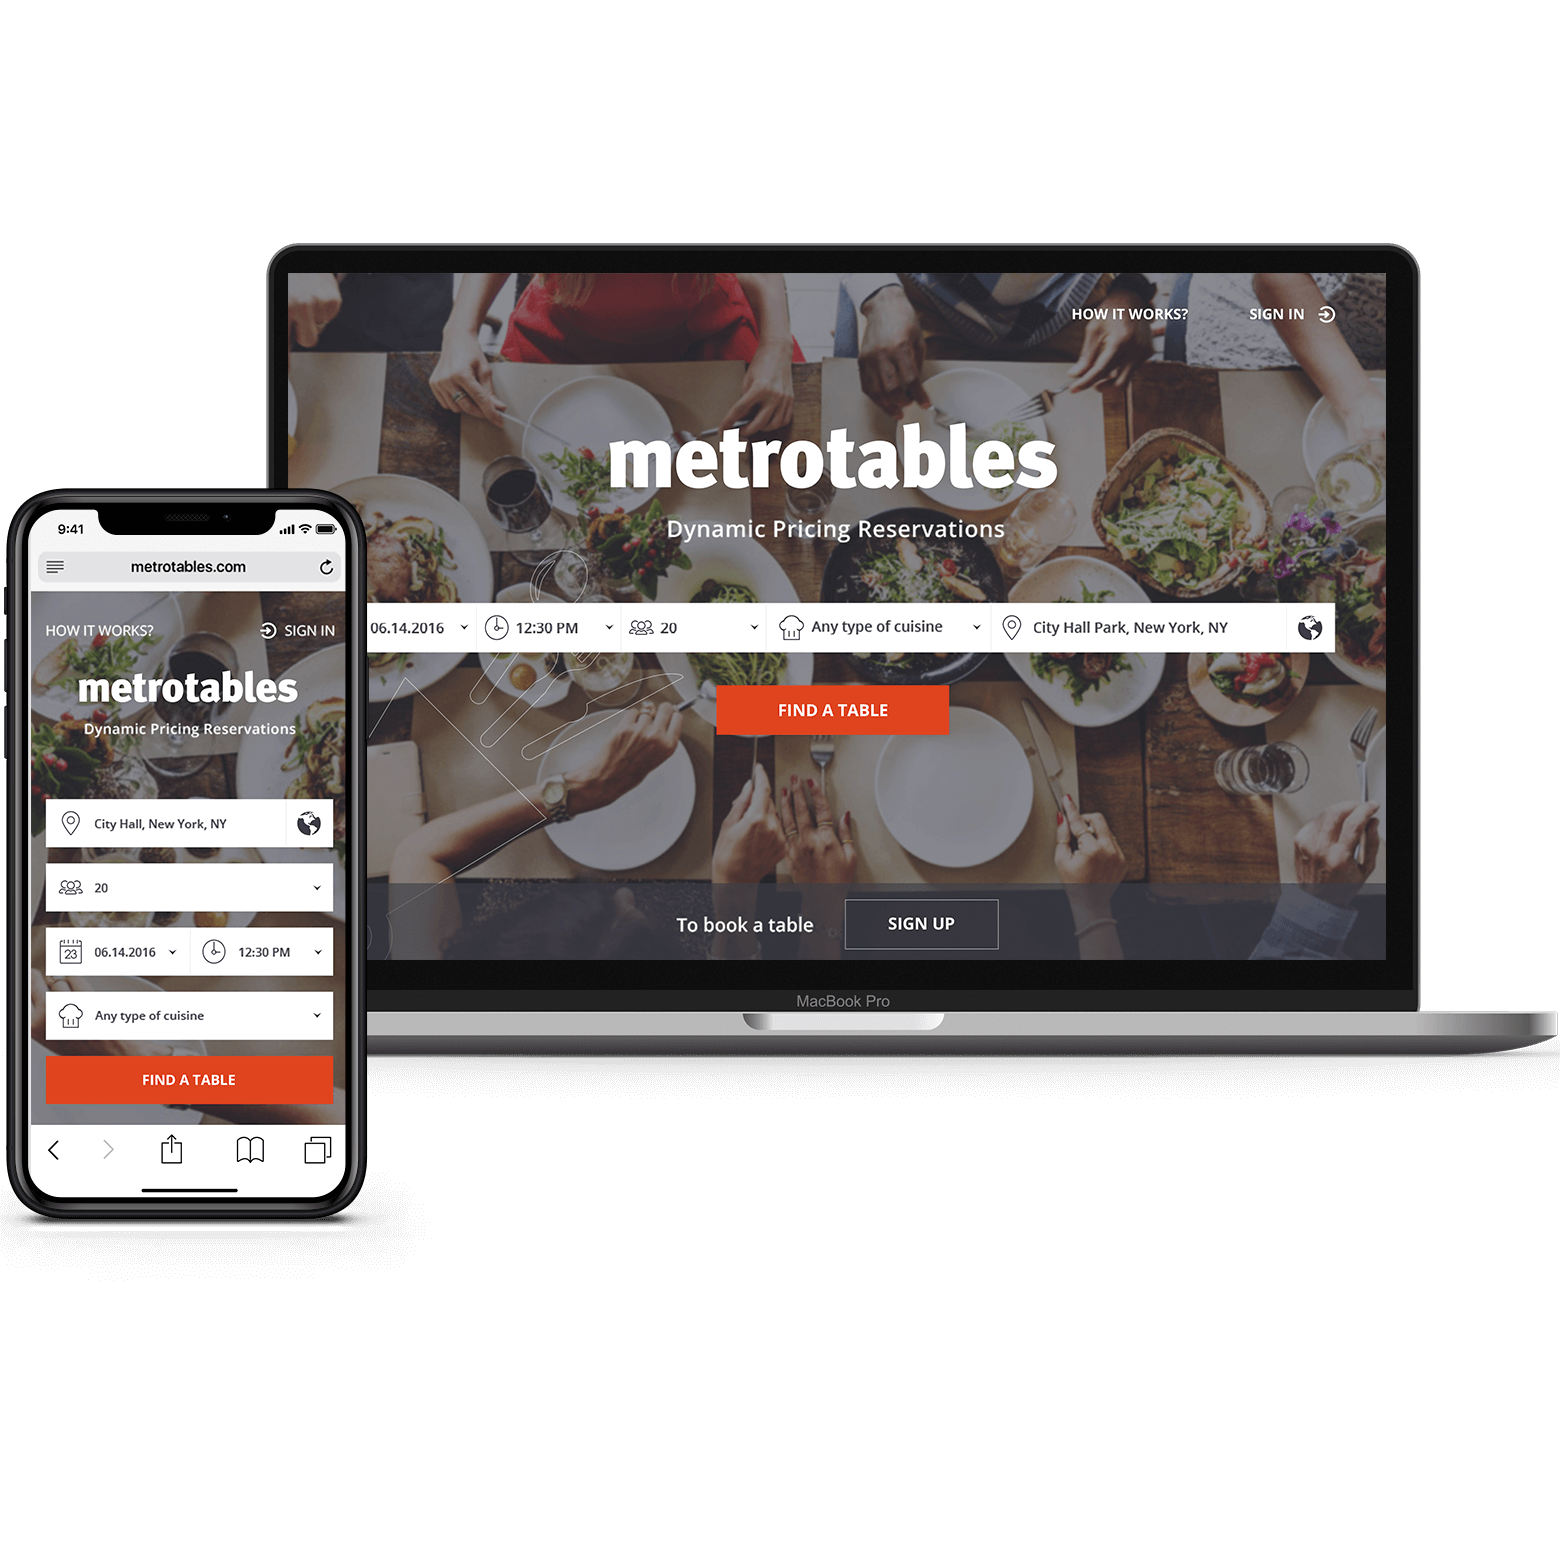 An online platform for dynamic pricing services and reservations at restaurants